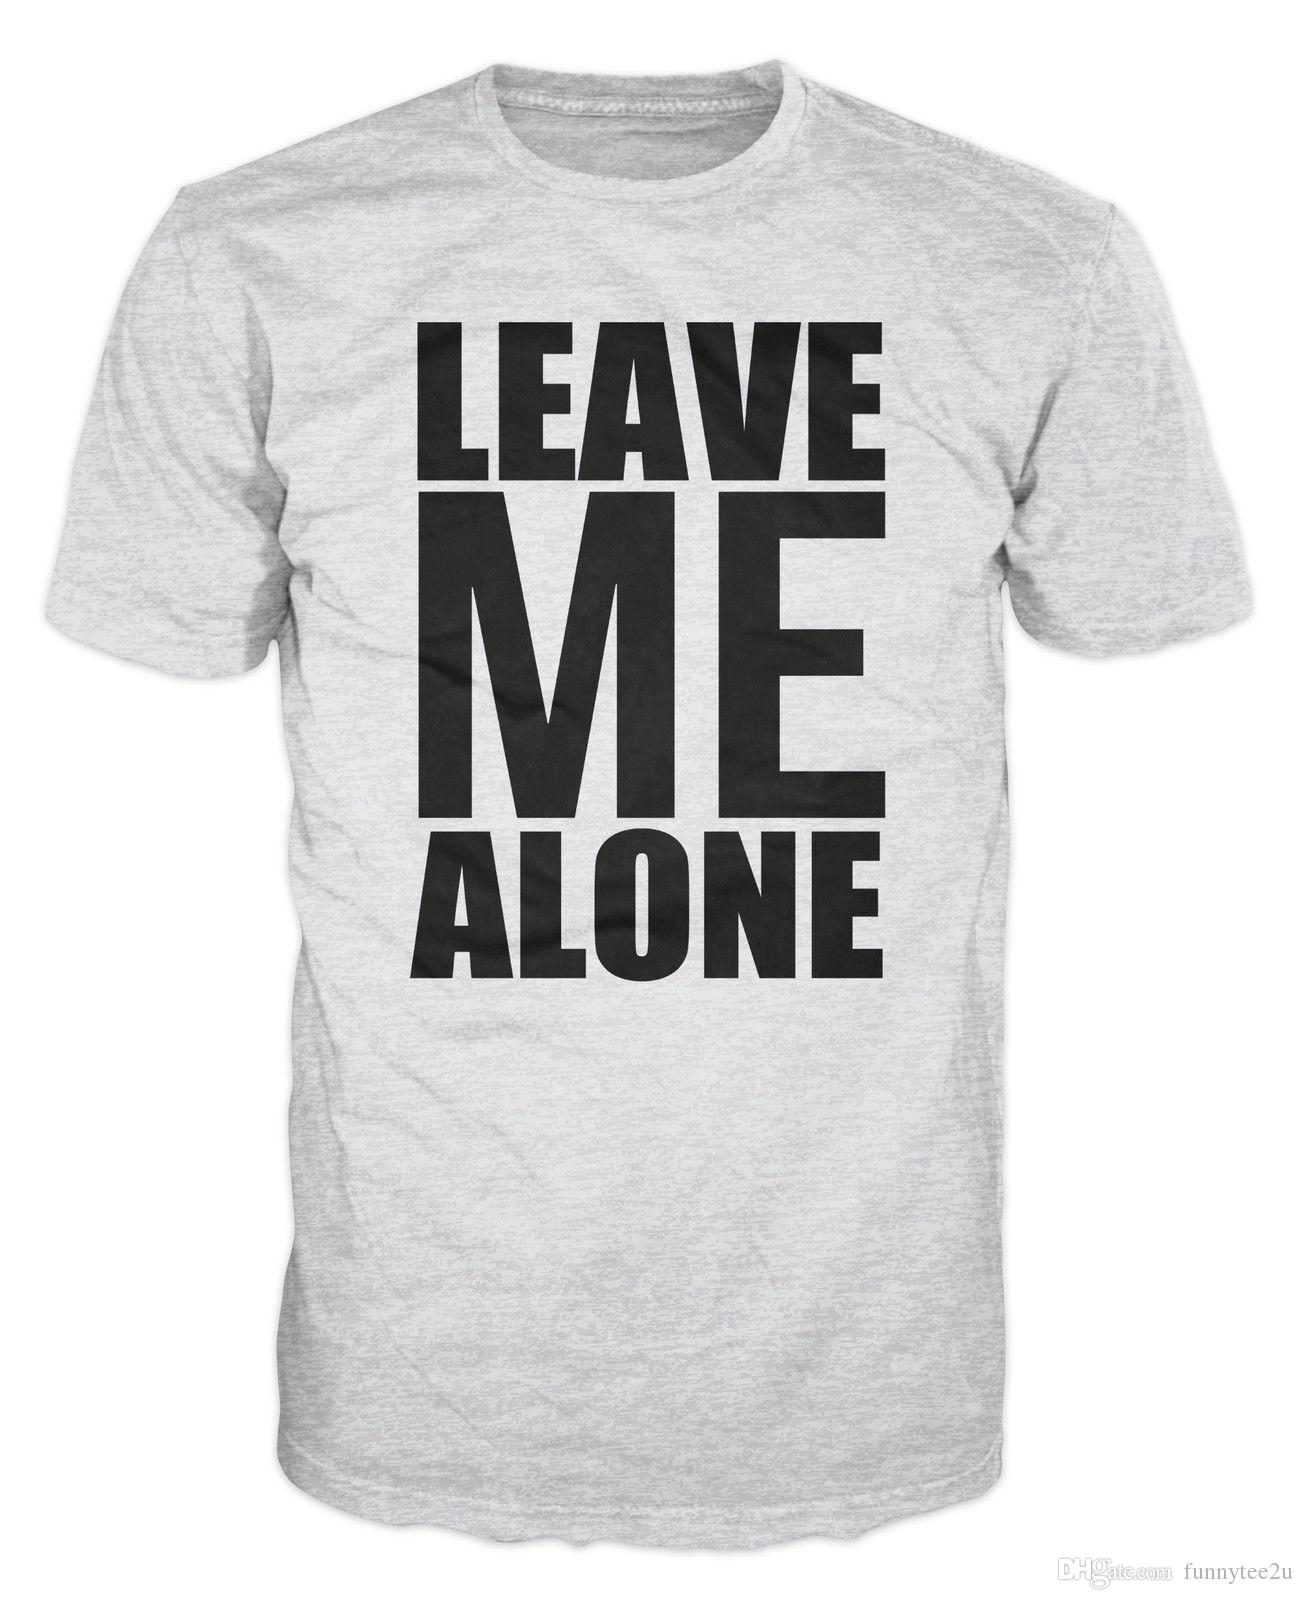 9a6e1c8b1 Leave Me Alone Gym Fitness Workout Training T-Shirt Tees Shirt Men's Brand  Clothing Short Sleeve Crewneck Cotton Big Size Team T-Shirts